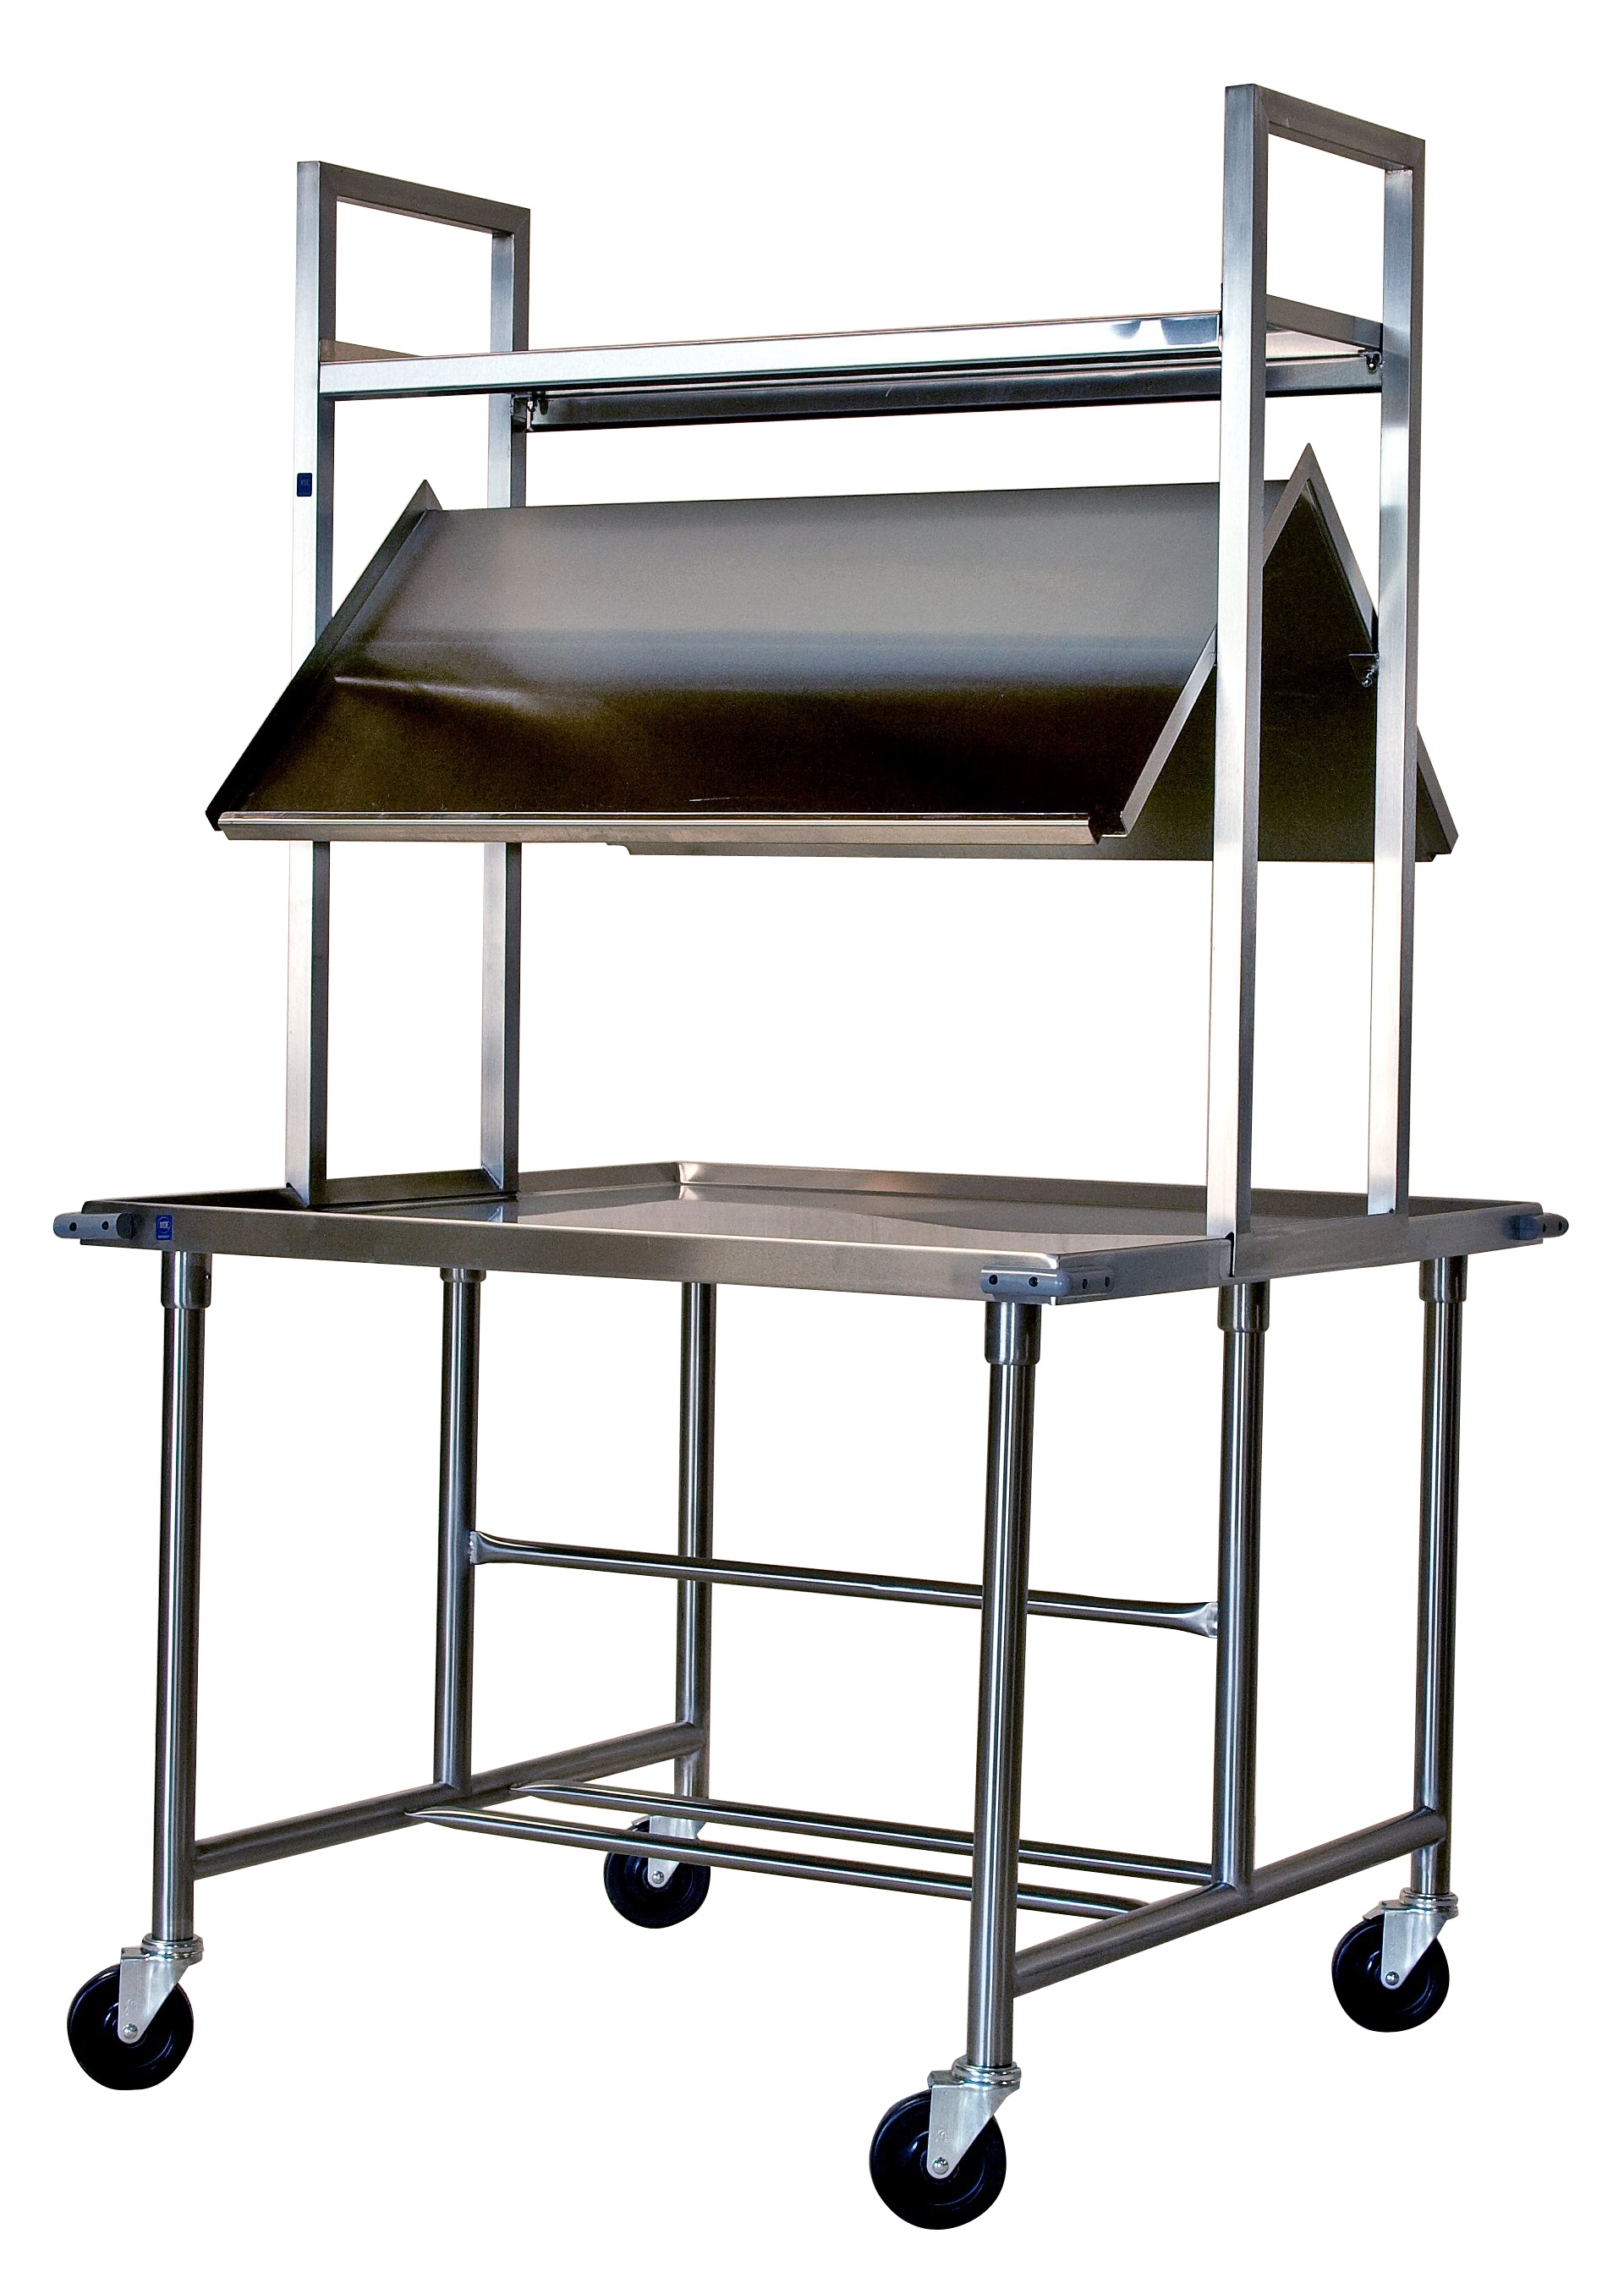 Stainless steel cafeteria food service cart